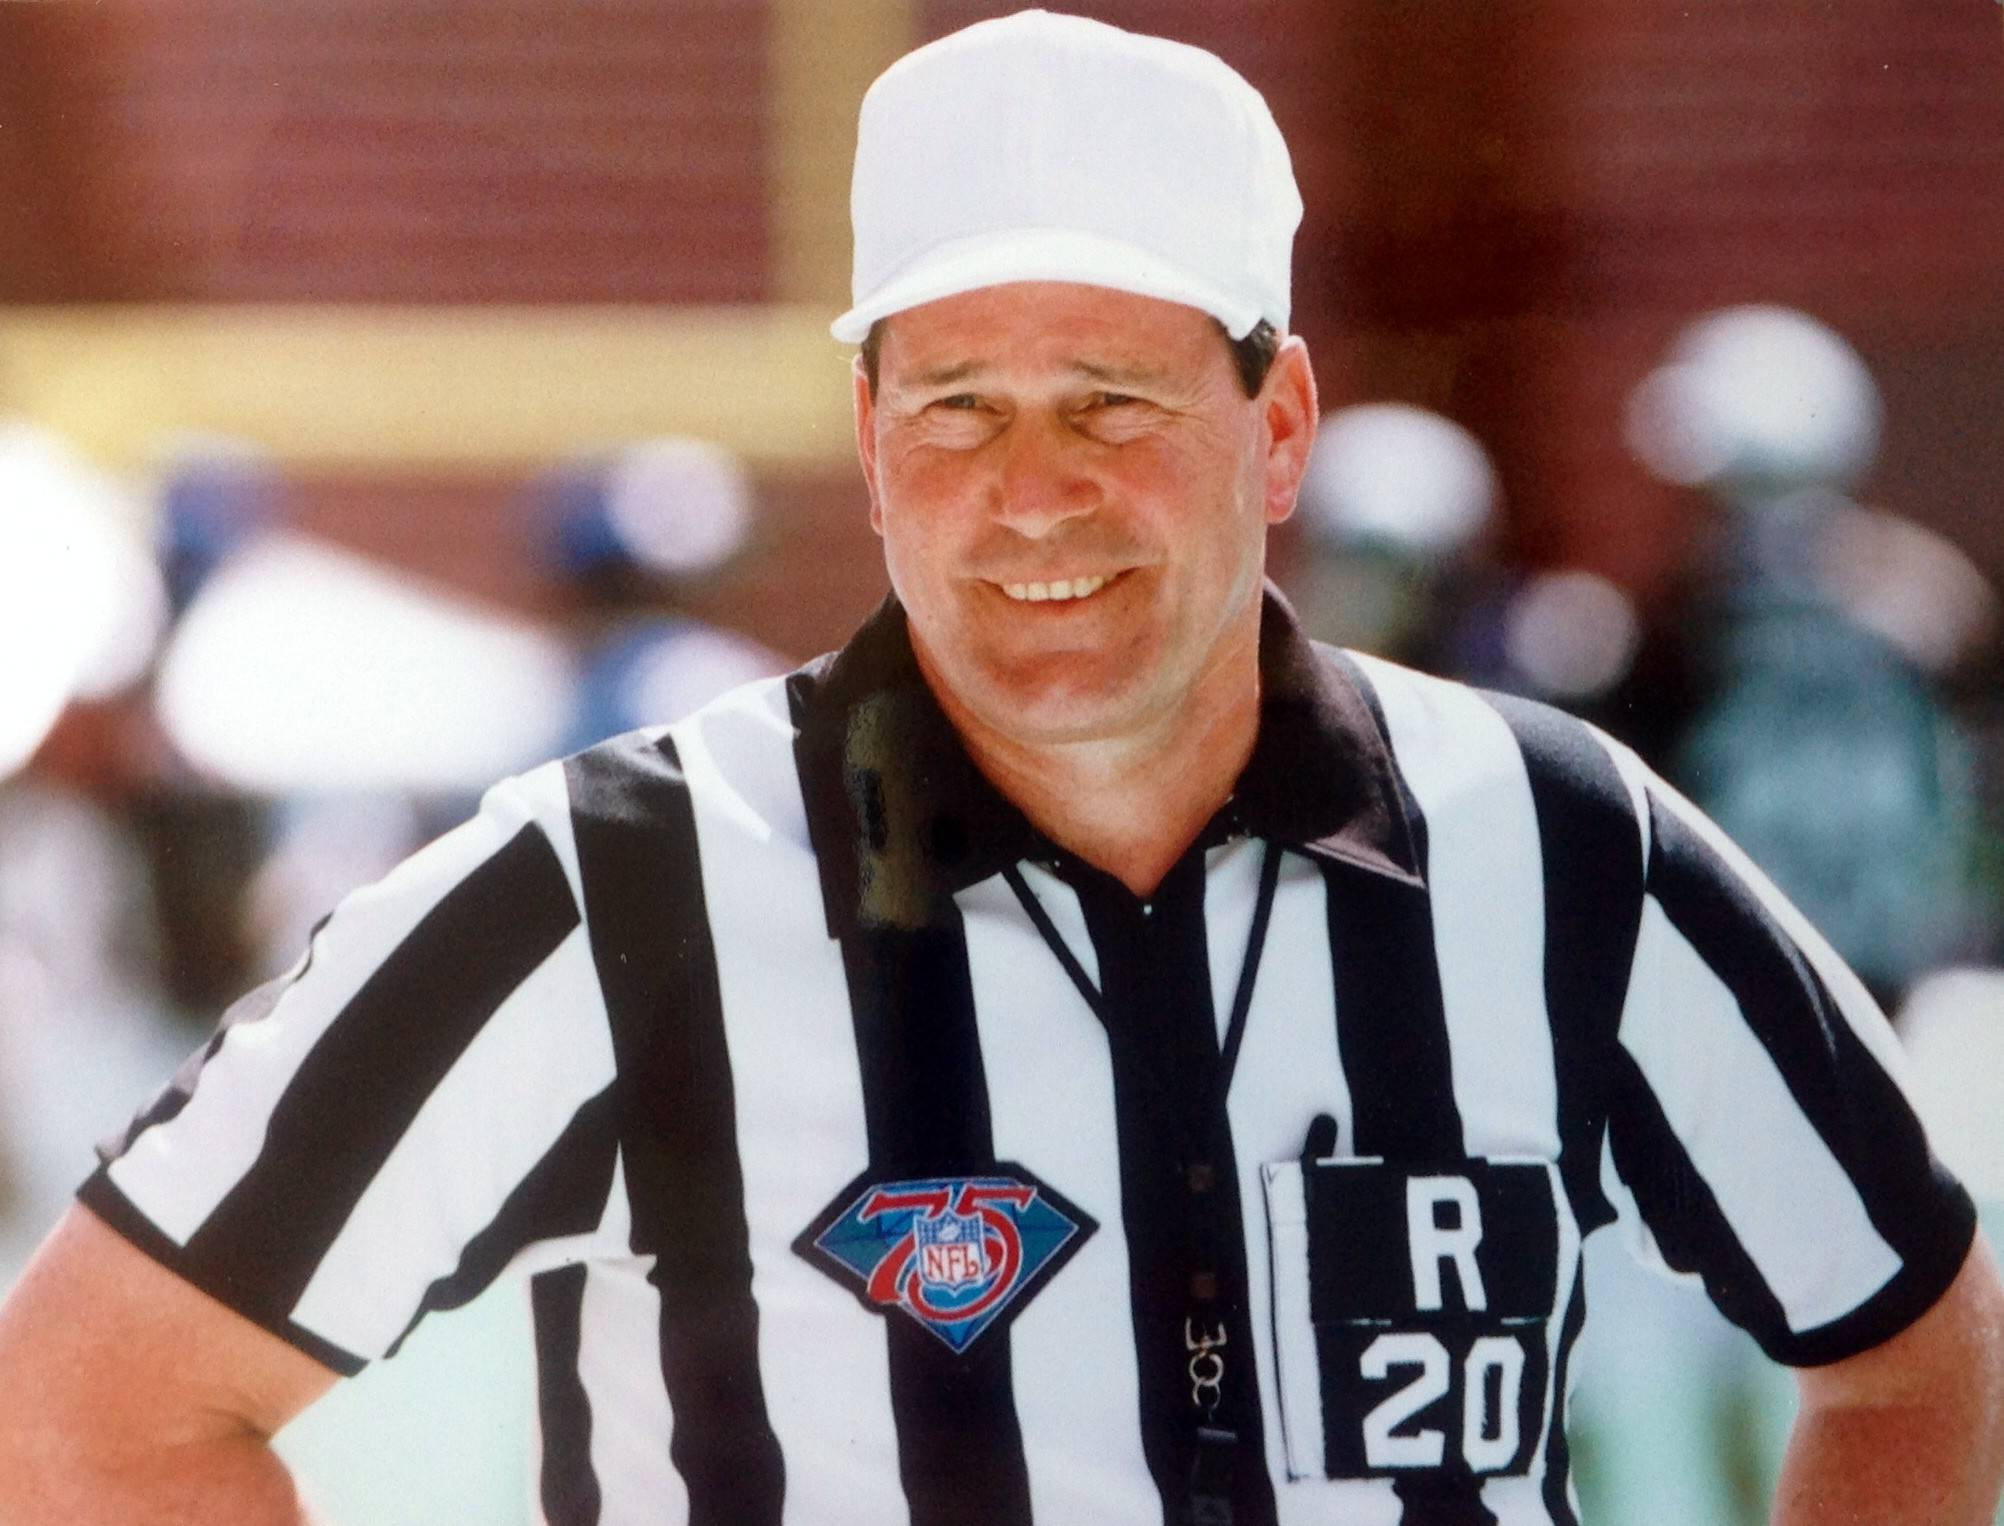 Former Elgin High School principal Larry Nemmers, now an NFL referee, will receive the Lifetime Achievement Award from the Elgin Sports Hall of Fame on Sunday.